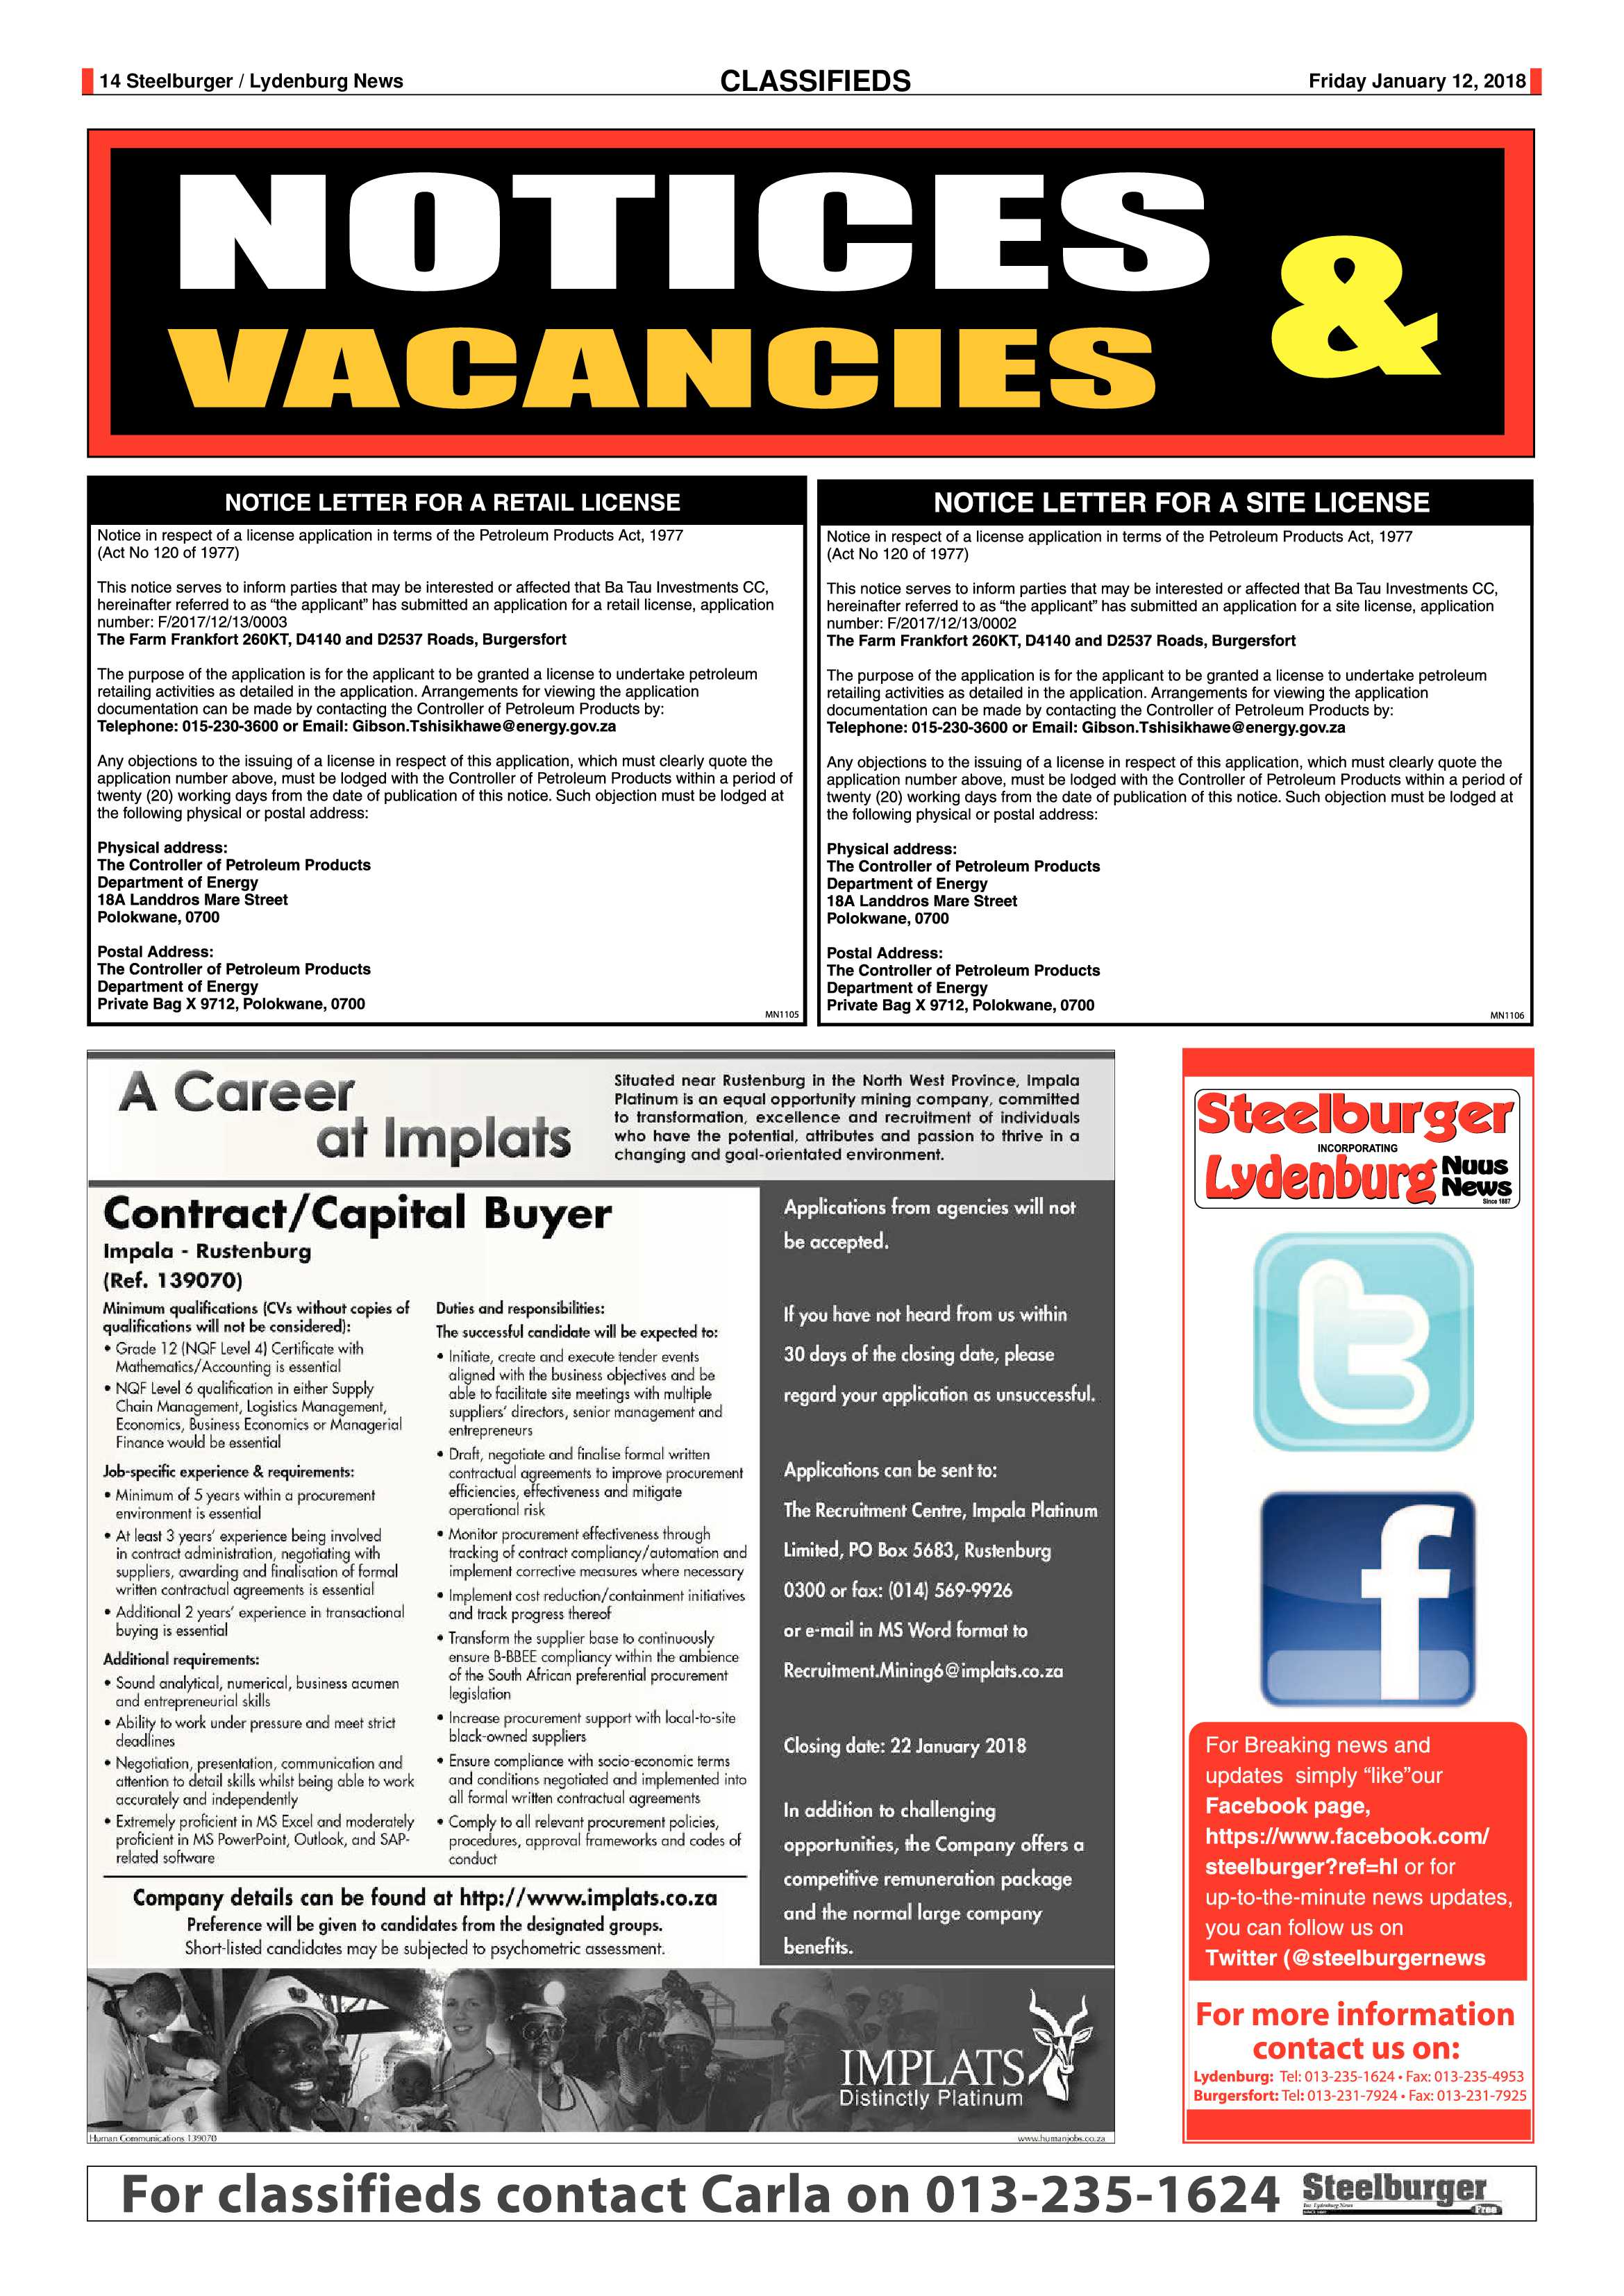 Steelburger 12 January 2018 Epapers Page 14